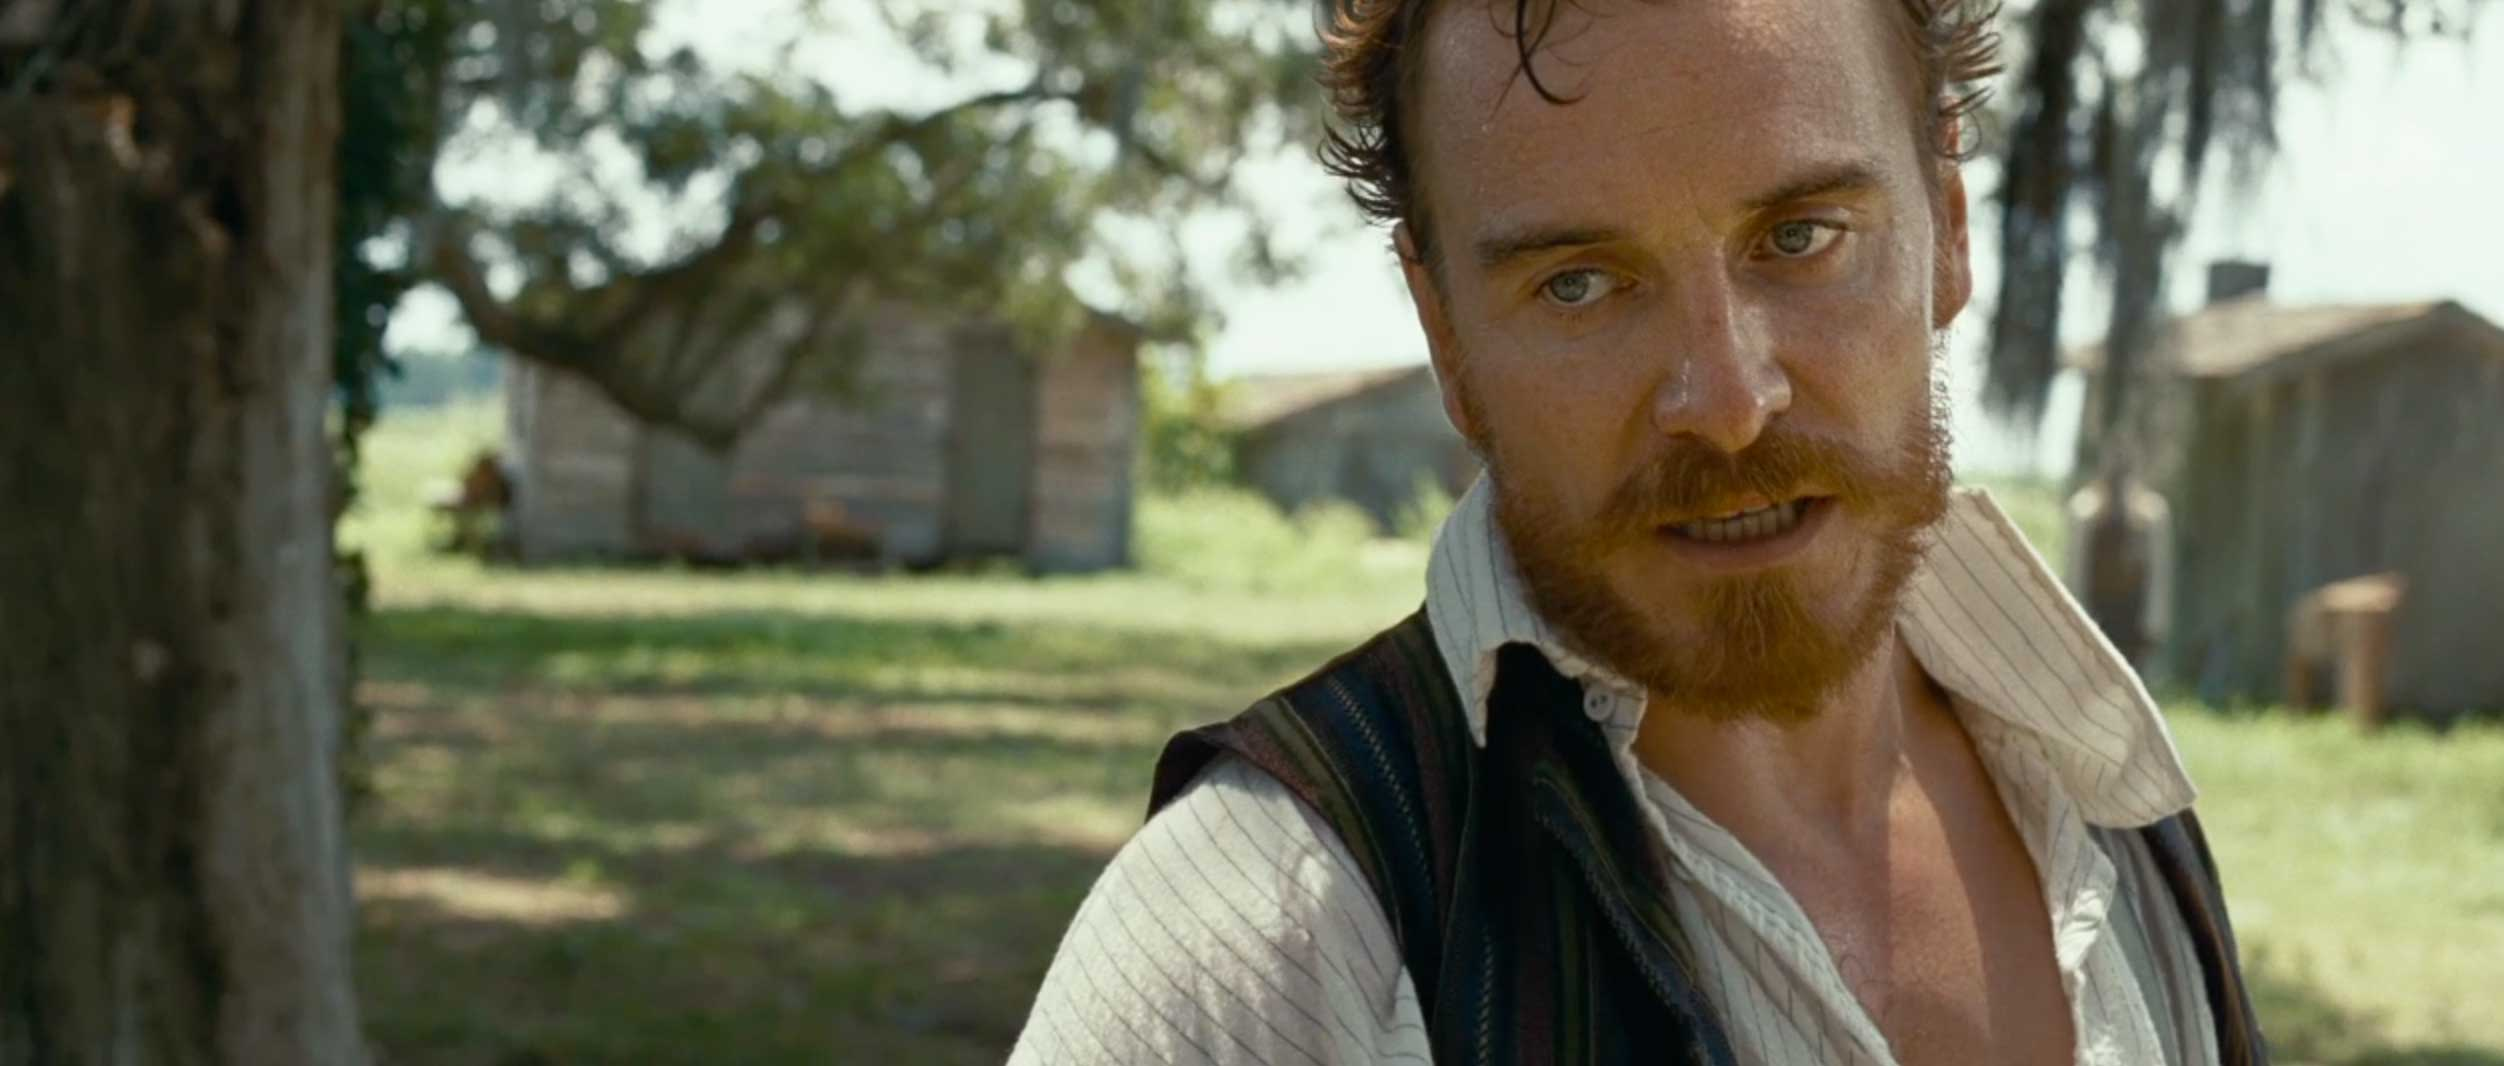 Michael Fassbender as Edwin Epp in 12 Years A Slave (2013)